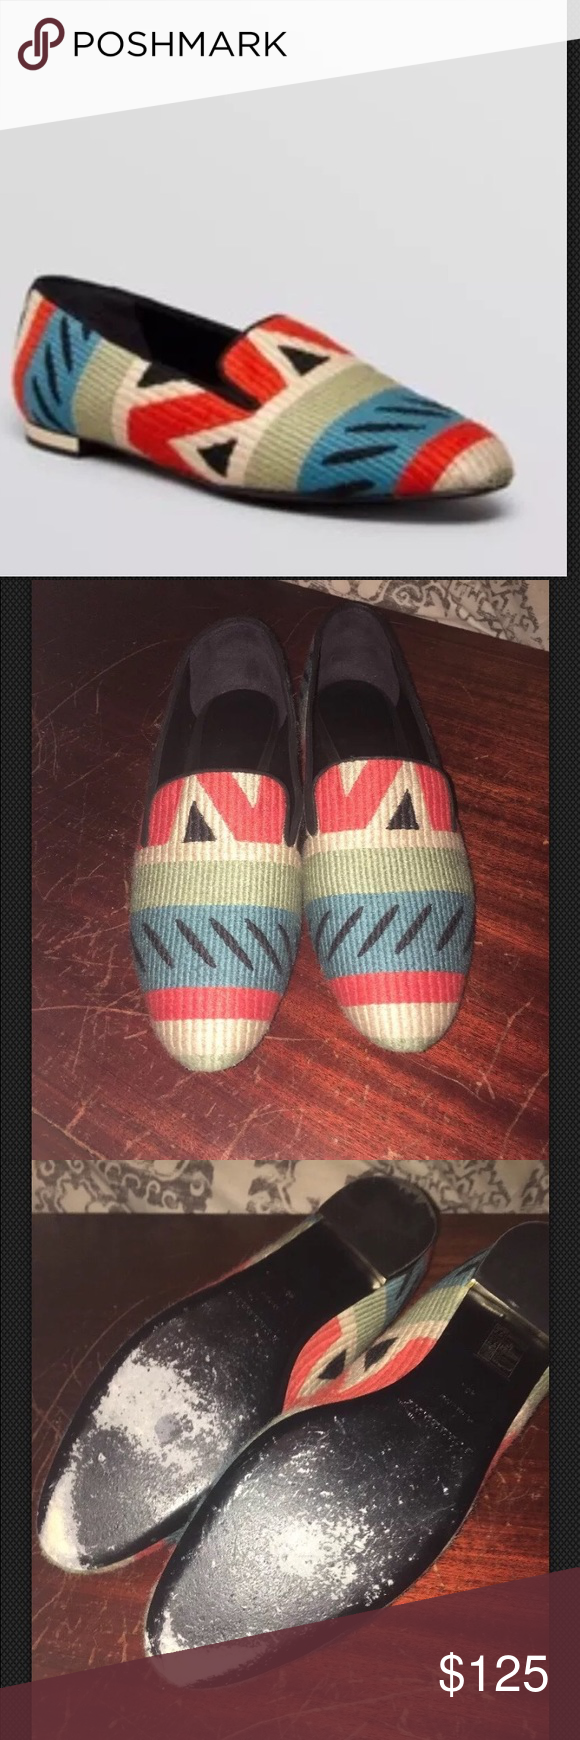 e71985c8b56 Burberry slip-ons DESCRIPTION Grab everyone s attention when you slip on  these Burberry slippers!